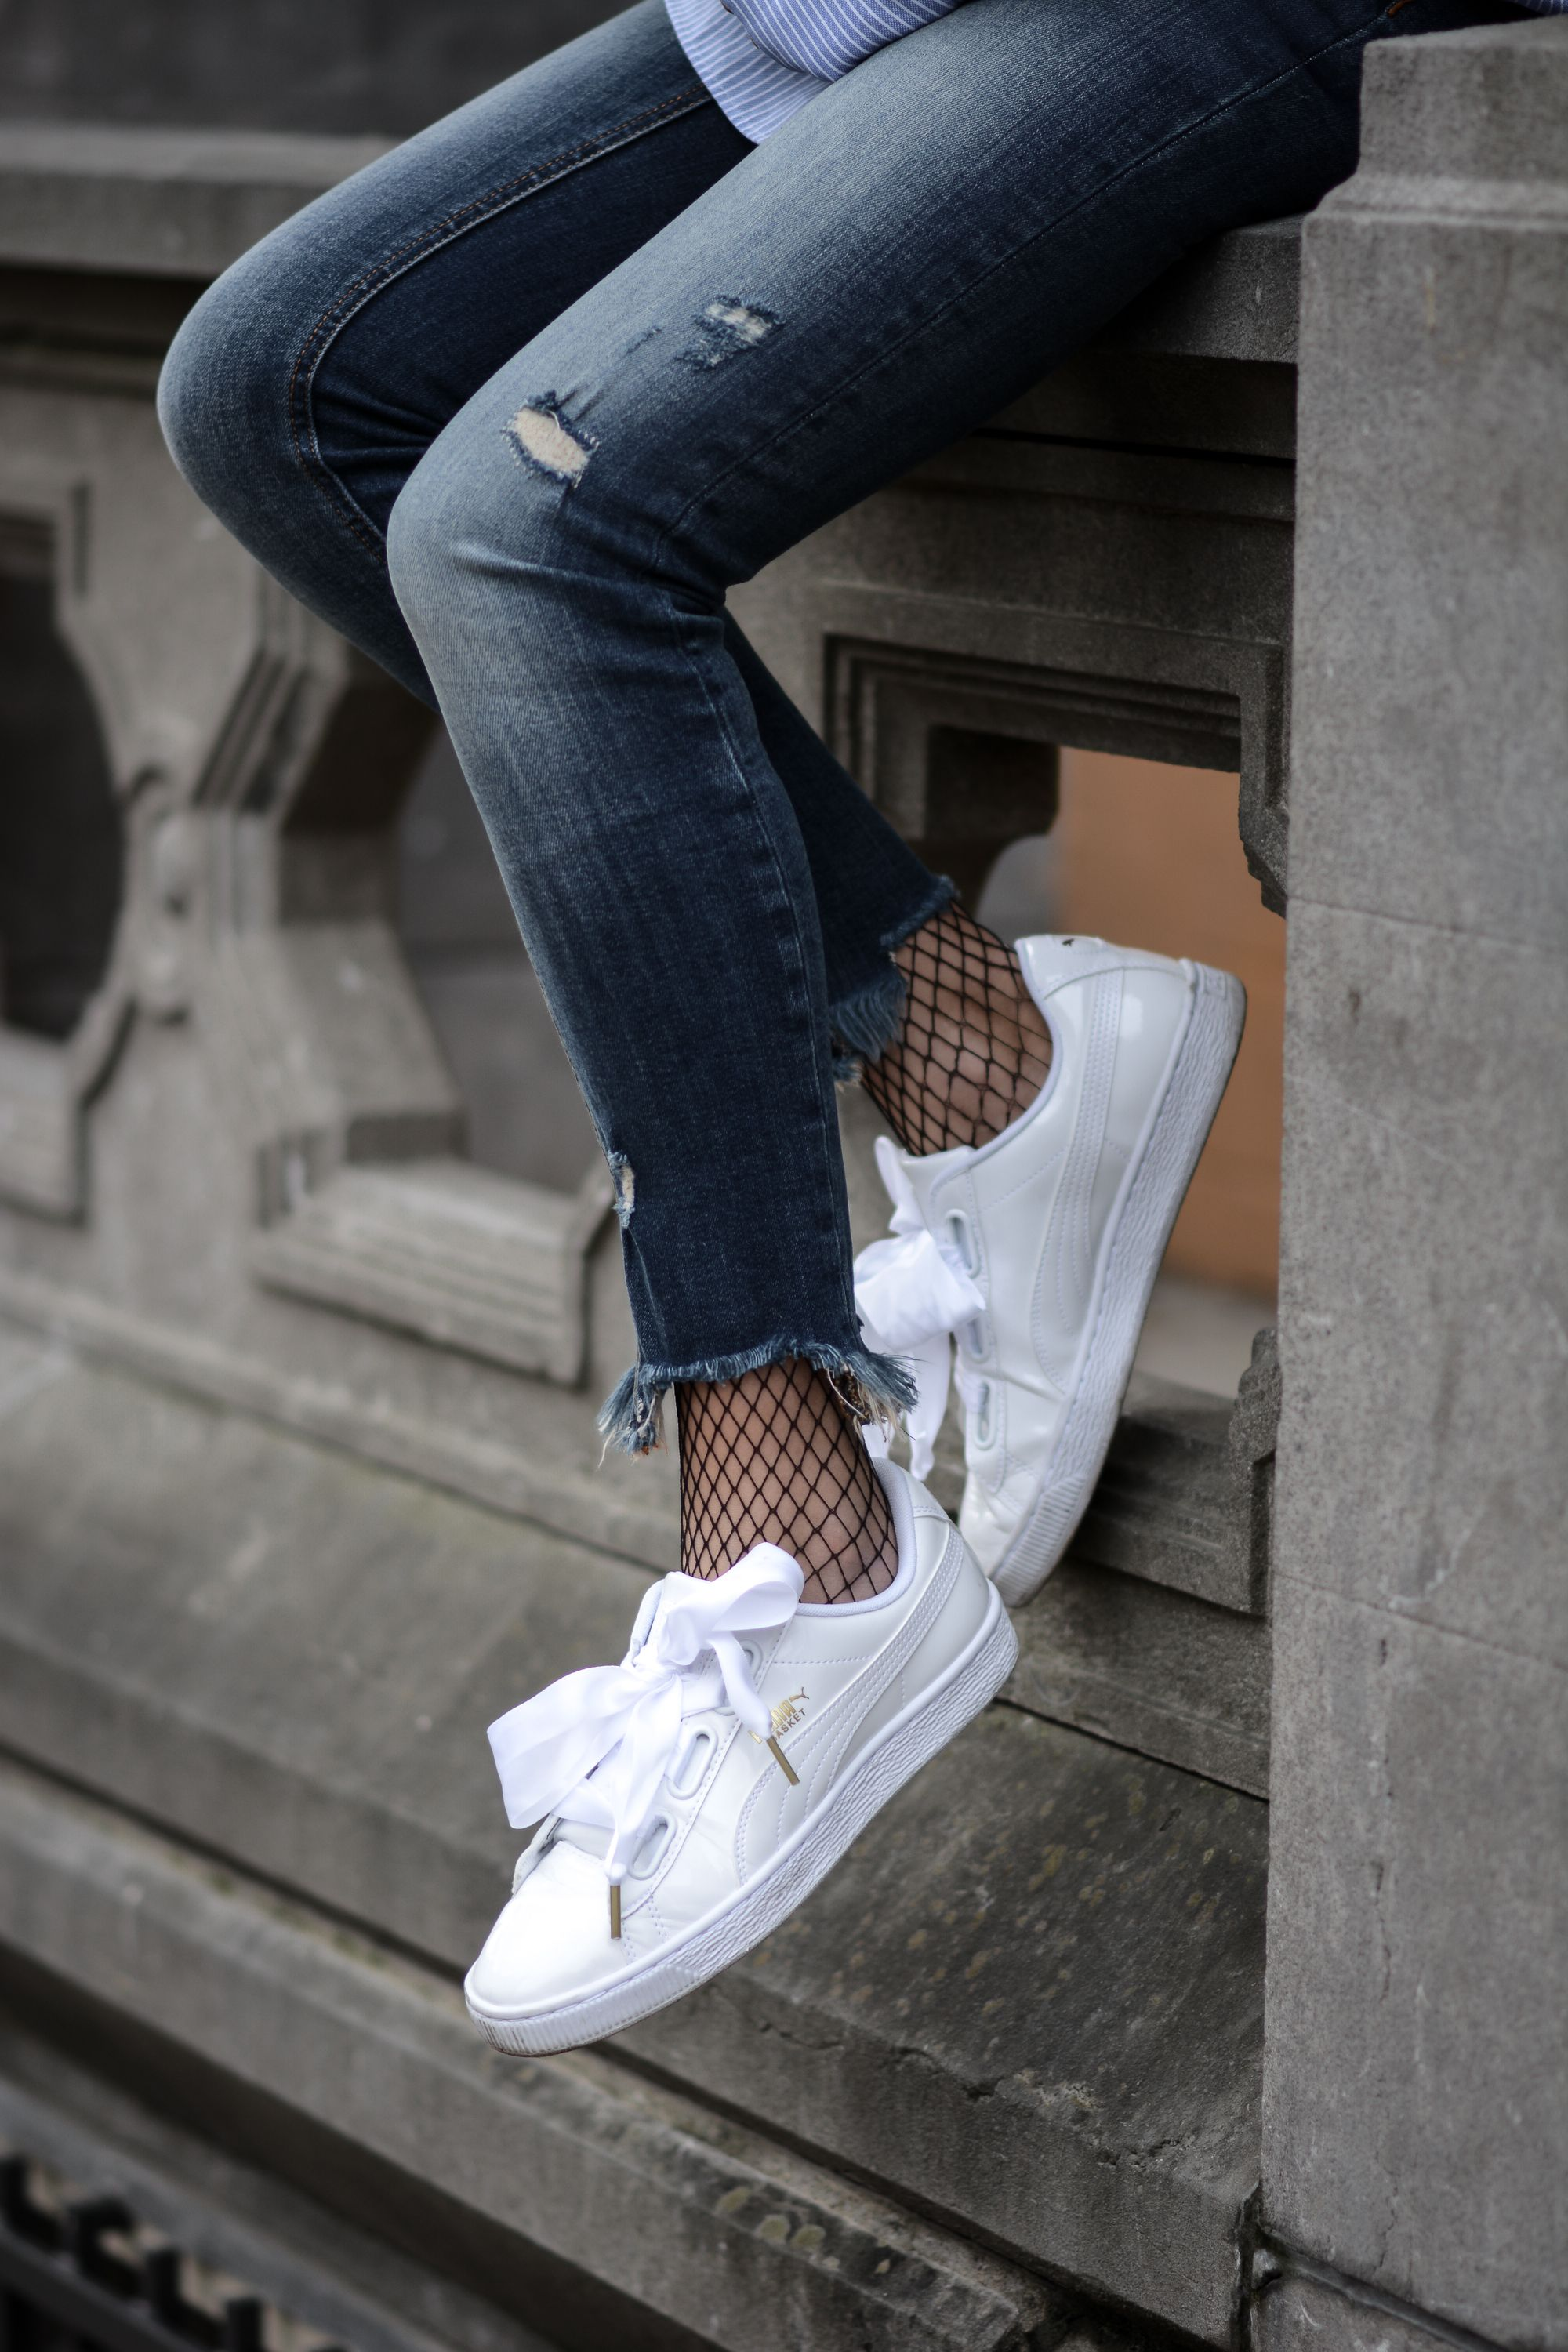 Baskets Puma Heart blanches et noires | DefShop France Blog